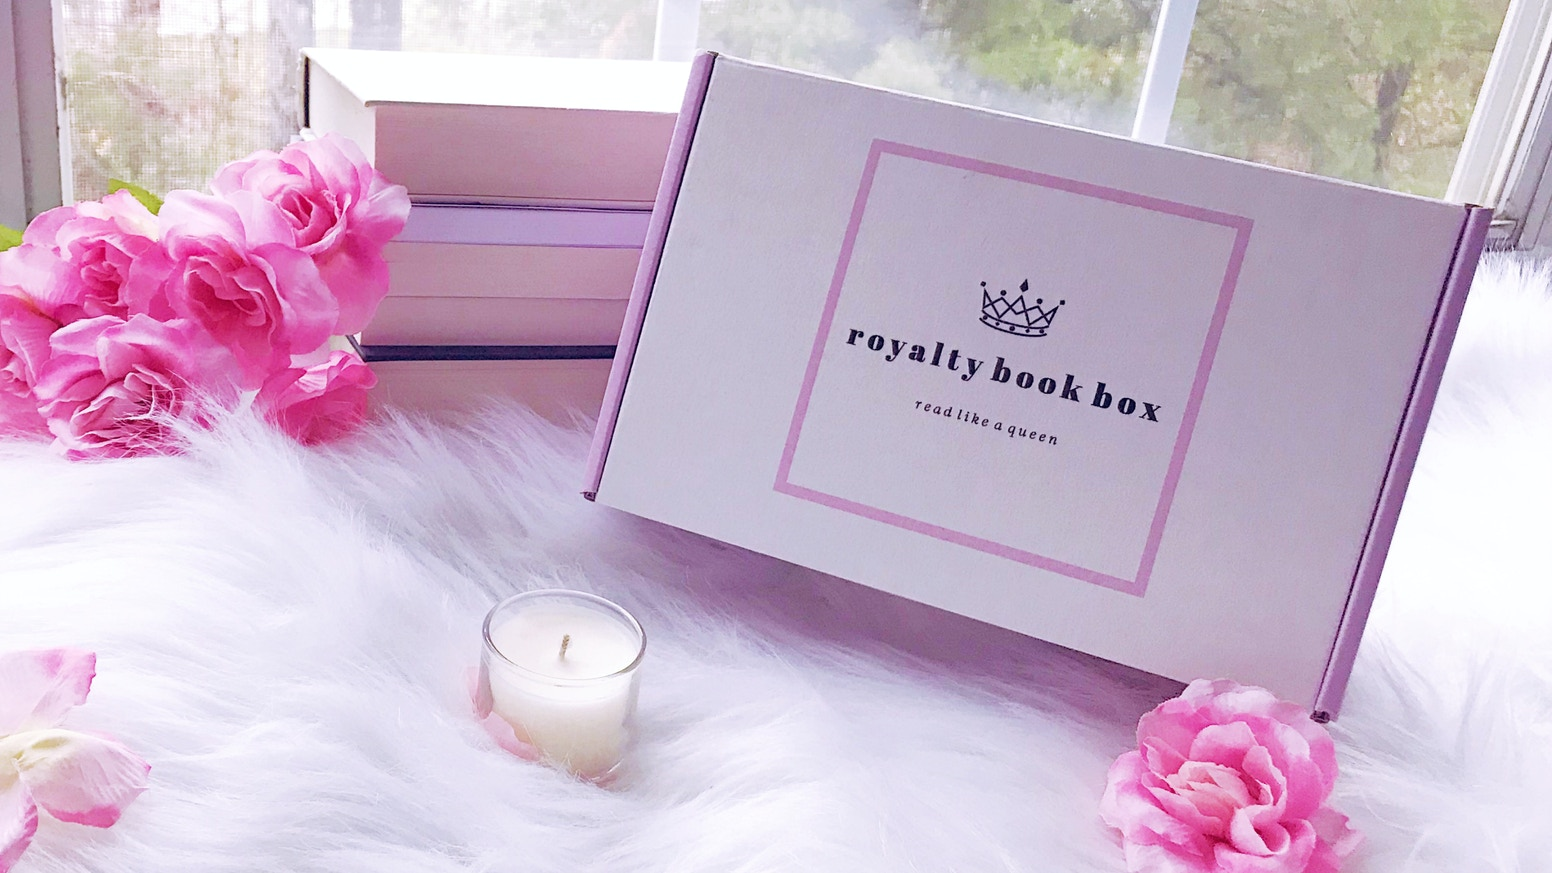 A book box subscription for readers who love romance books and self-care.